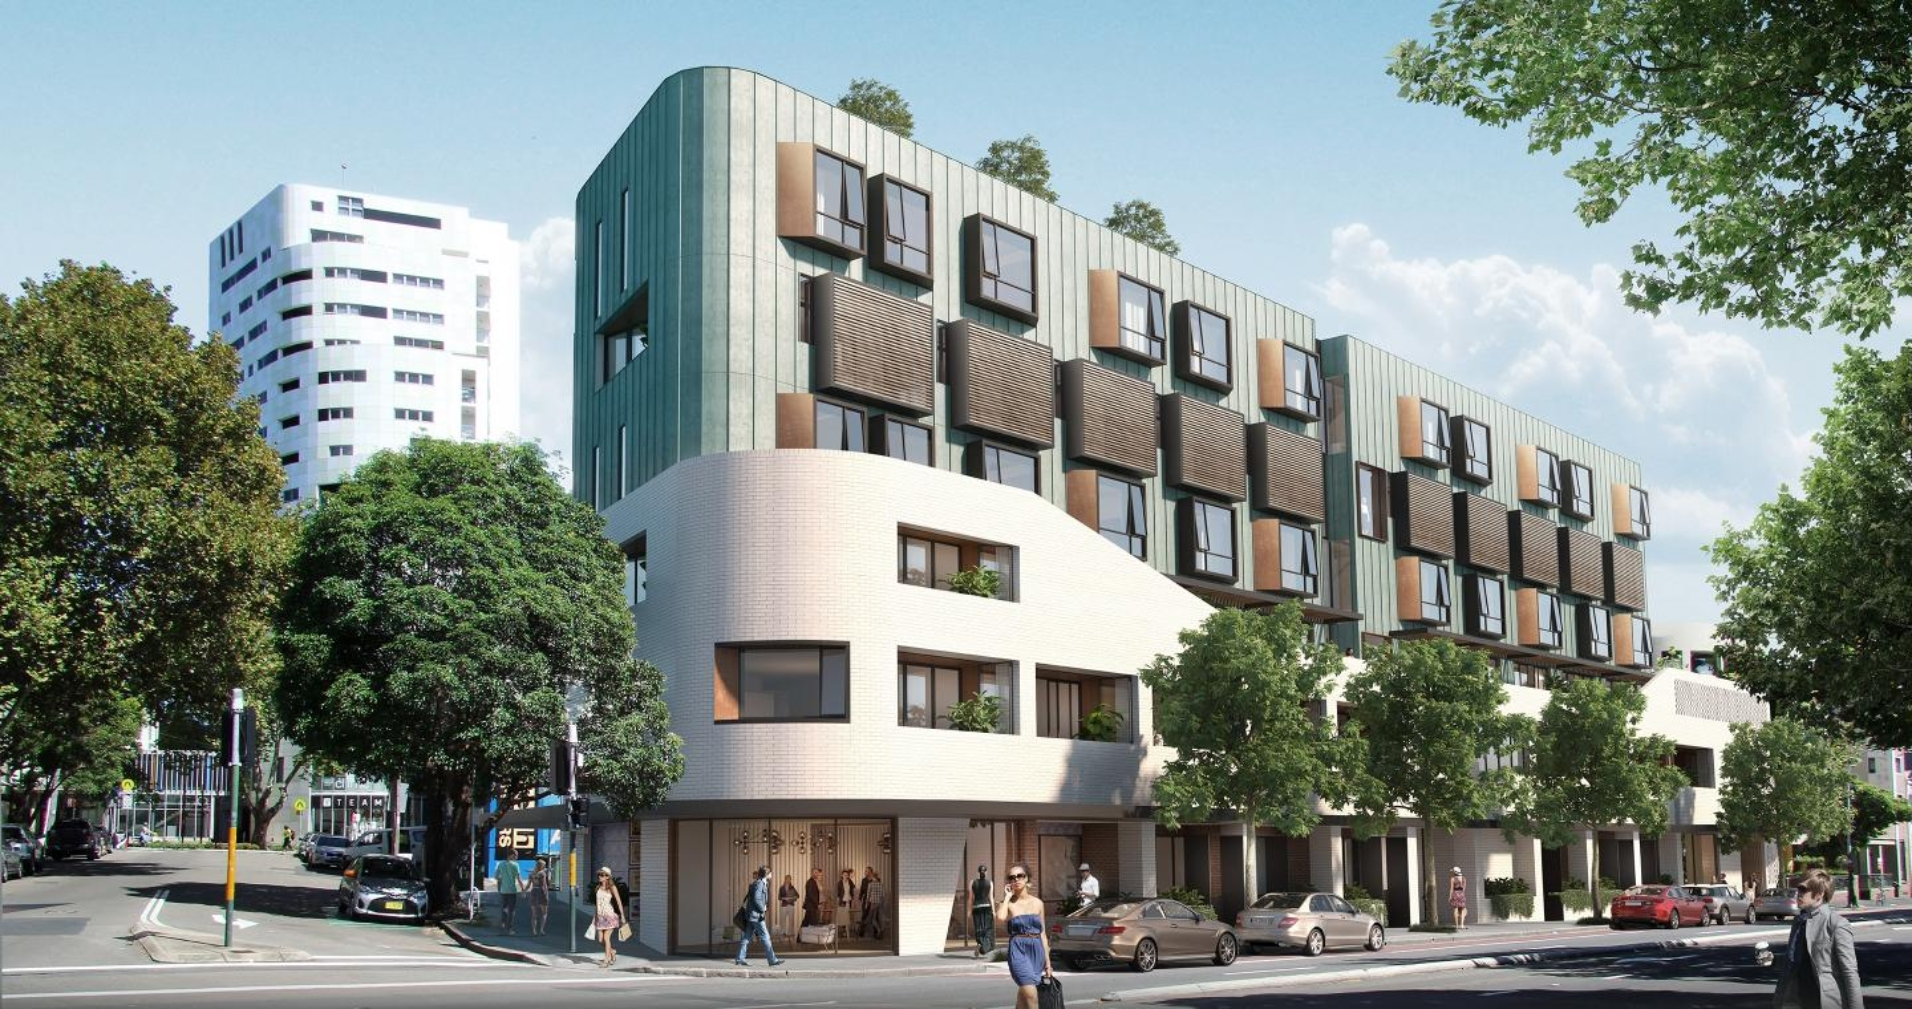 The Flinders Street development will comprise 18 double storey dwellings, 10 single storey dwellings, with seven of the dwellings including private rooftop courtyards, along with a common rooftop courtyard.